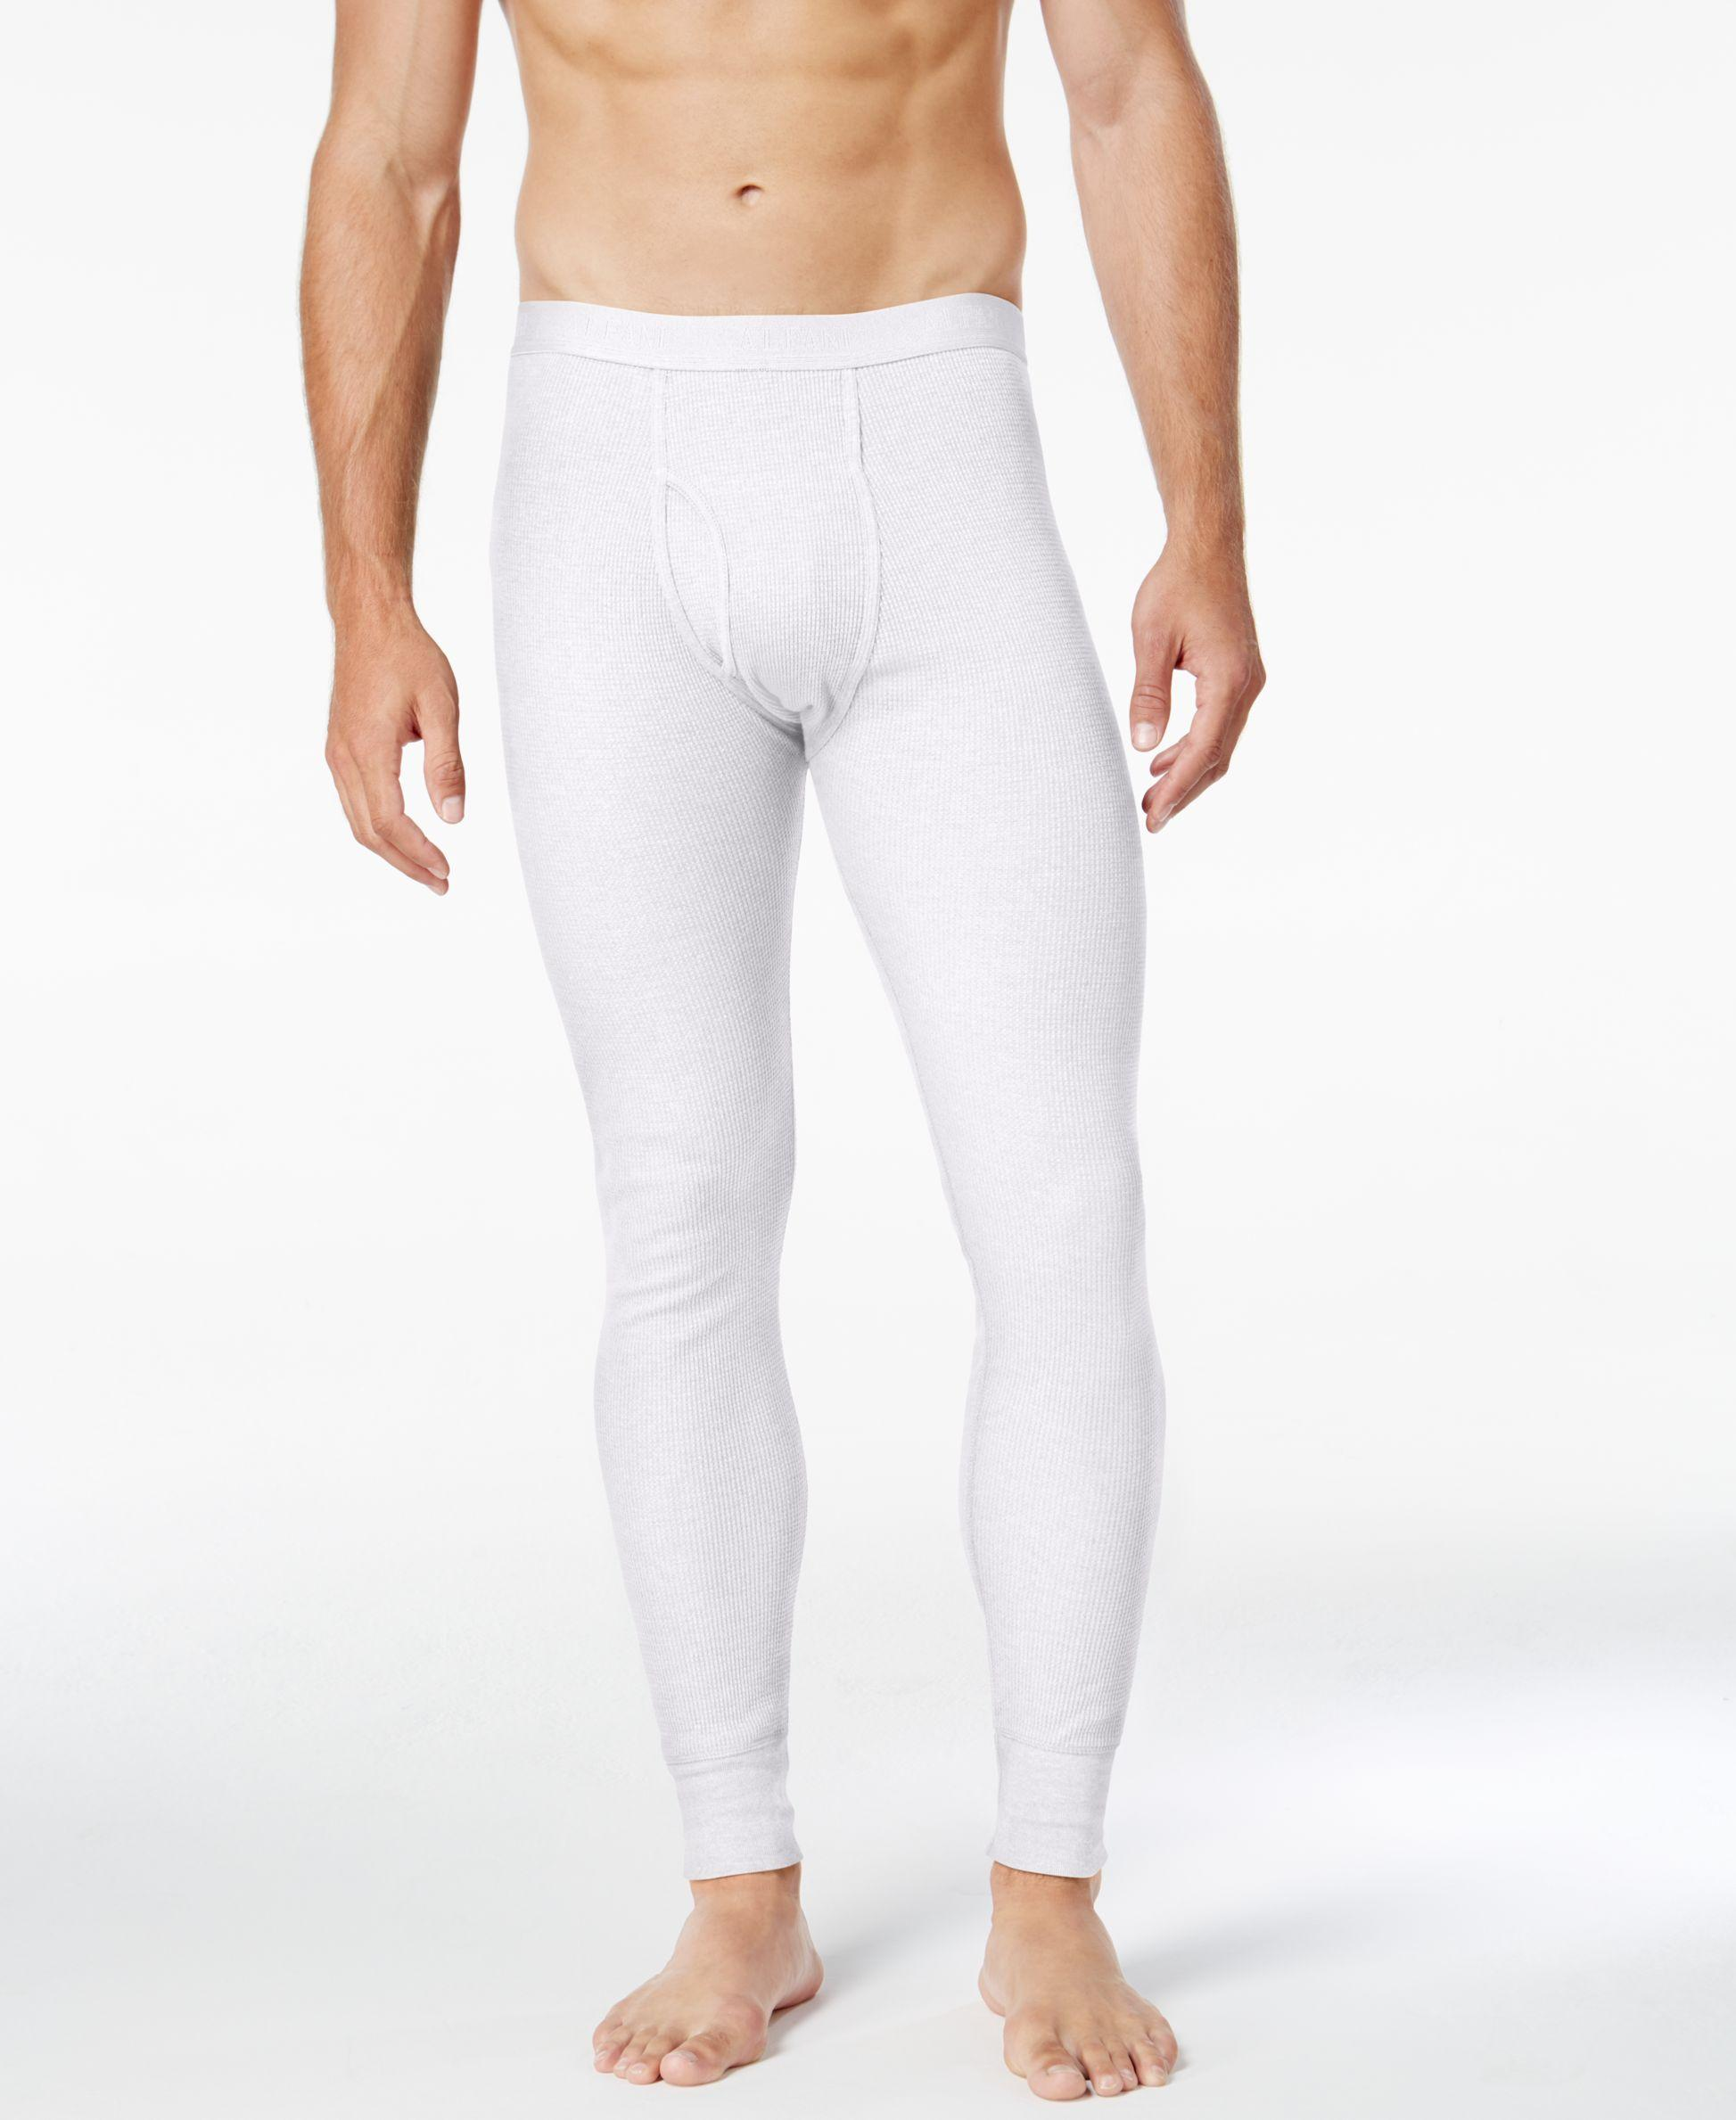 Available in sizes S - 2X, with some tall sizes available. Imported, % pre-shrunk comfortable stretch poly fabric, and machine washable for years of service. union suit-long johns MORE LONG JOHNS ALL MENS ACCESSORIES SHOP SALE ITEMS. Uncommon Products, Extraordinary Service.